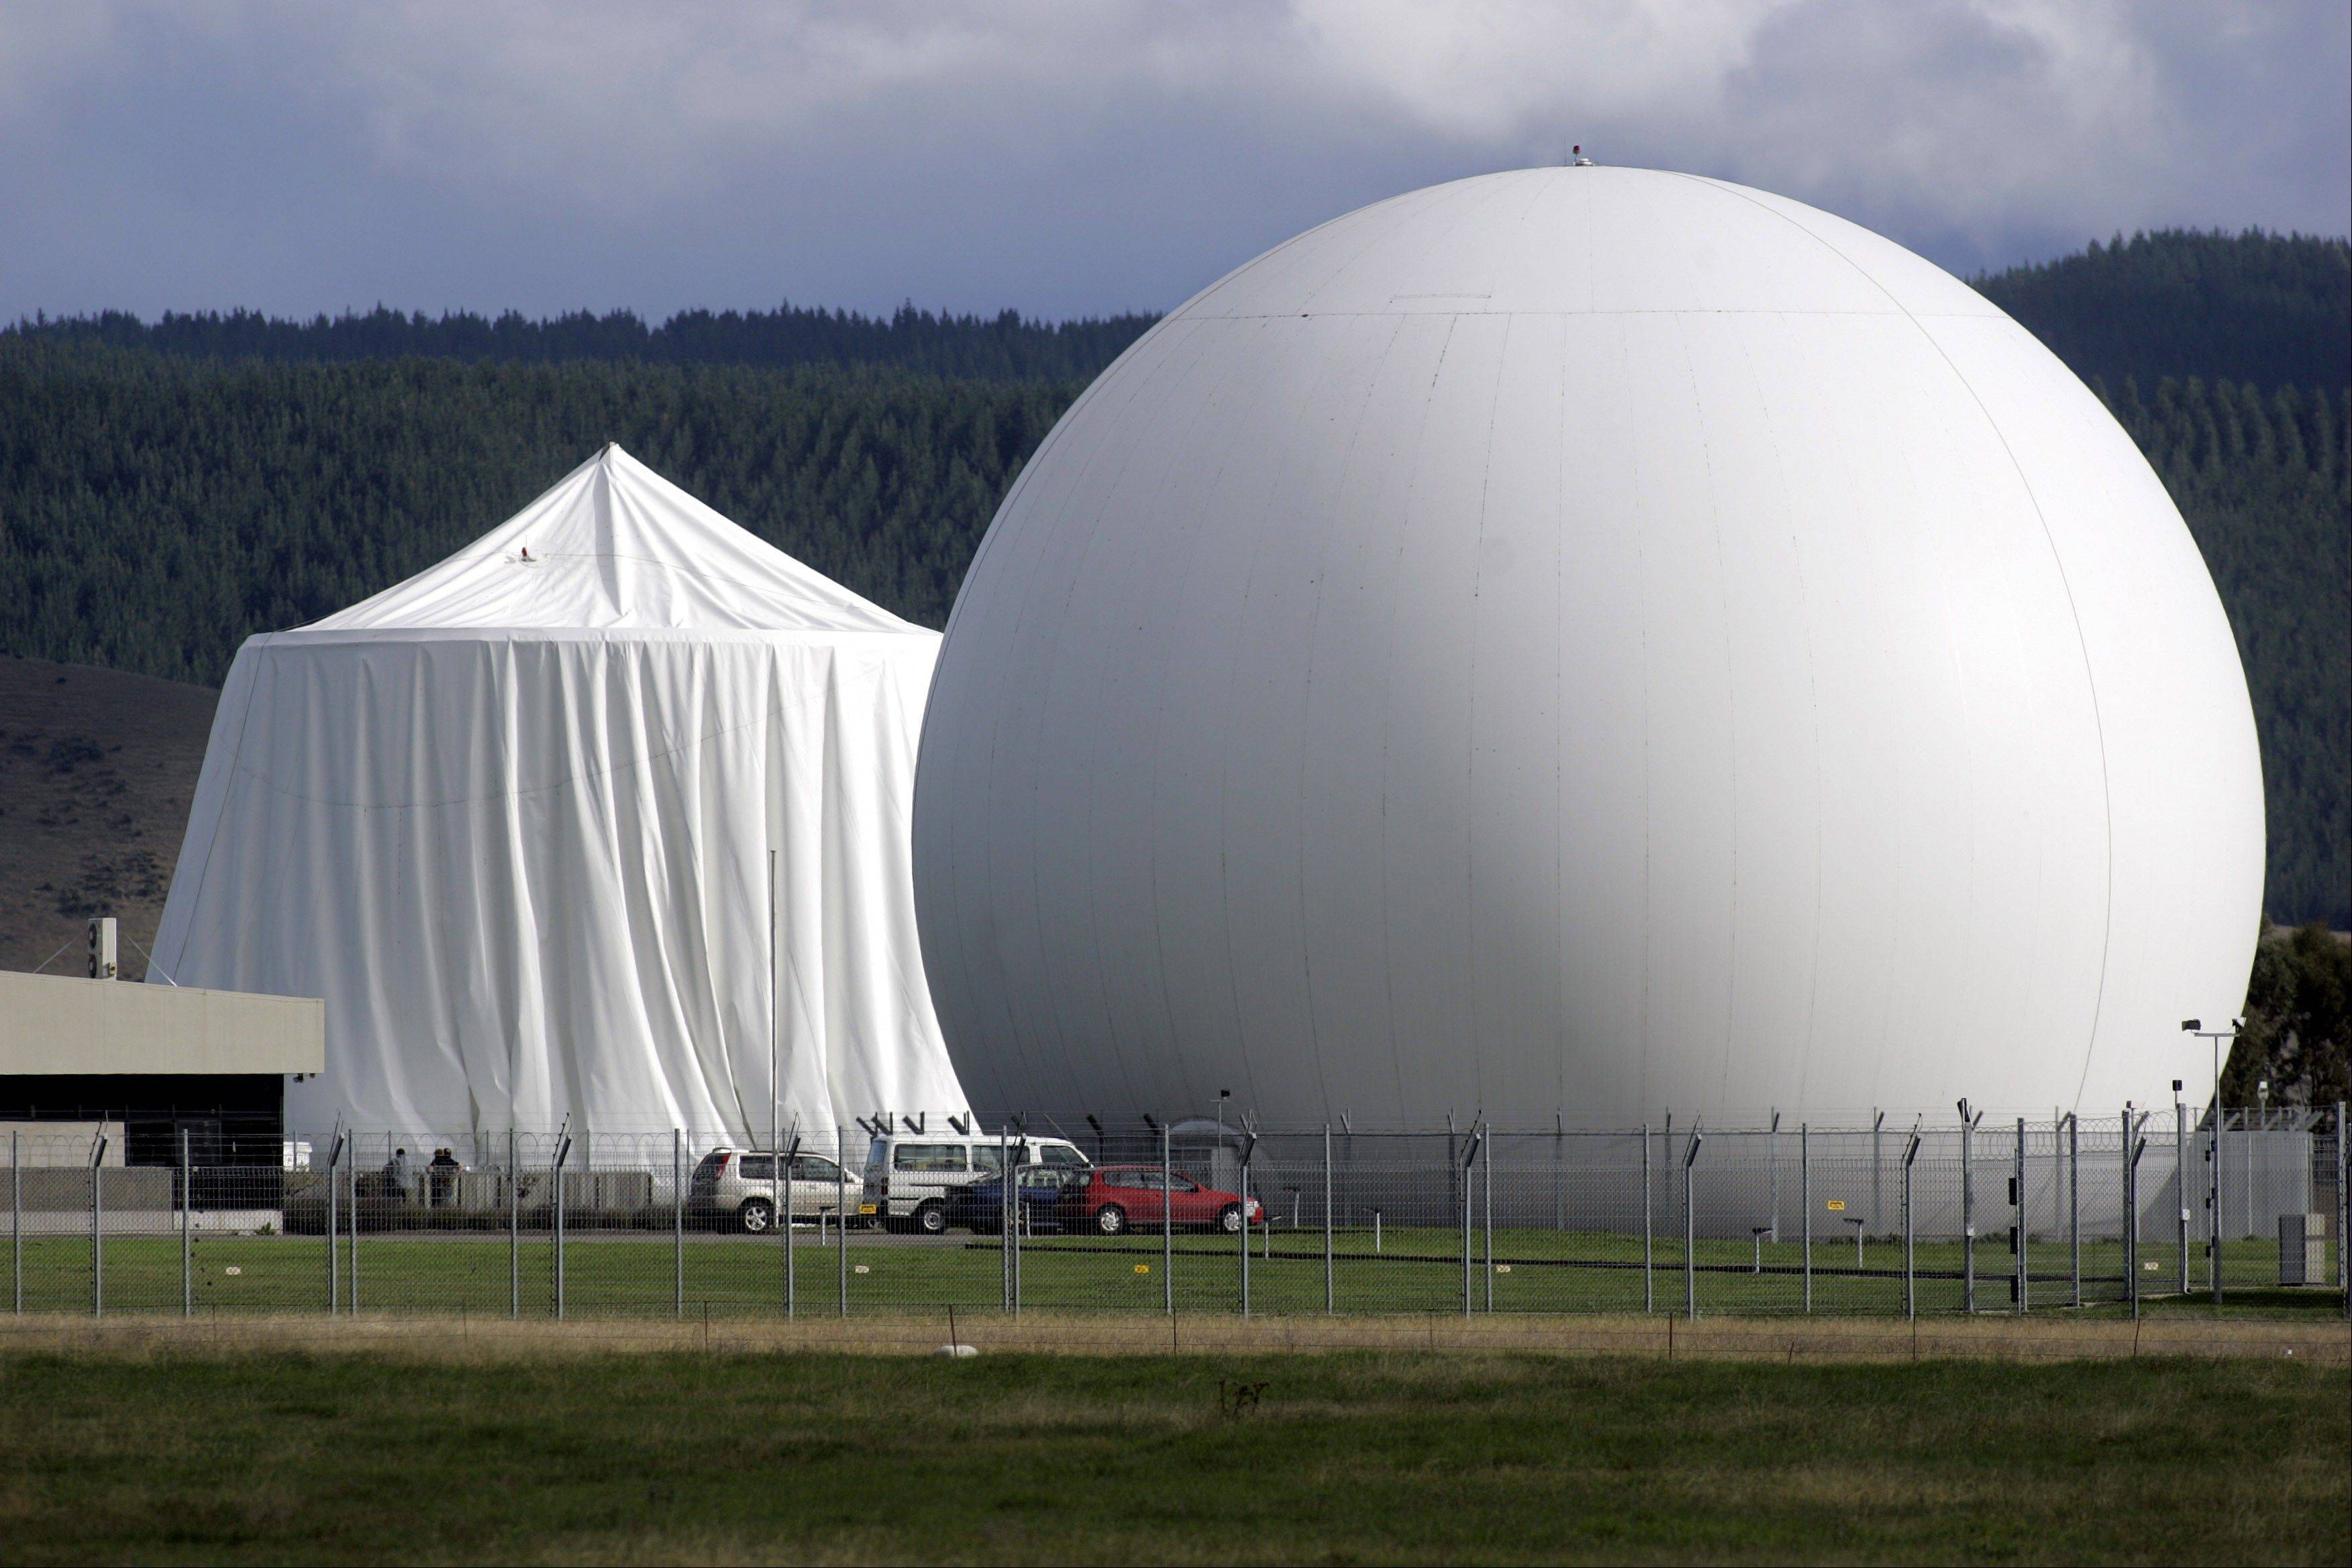 This photo from 2008 shows a satellite communications dome at Waihopai satellite communications interception station near Blenheim, New Zealand. Waihopai satellite communications is part of a surveillance spying alliance known as Five Eyes that groups together five English-speaking democracies -- the U.S., Britain, Canada, Australia and New Zealand.